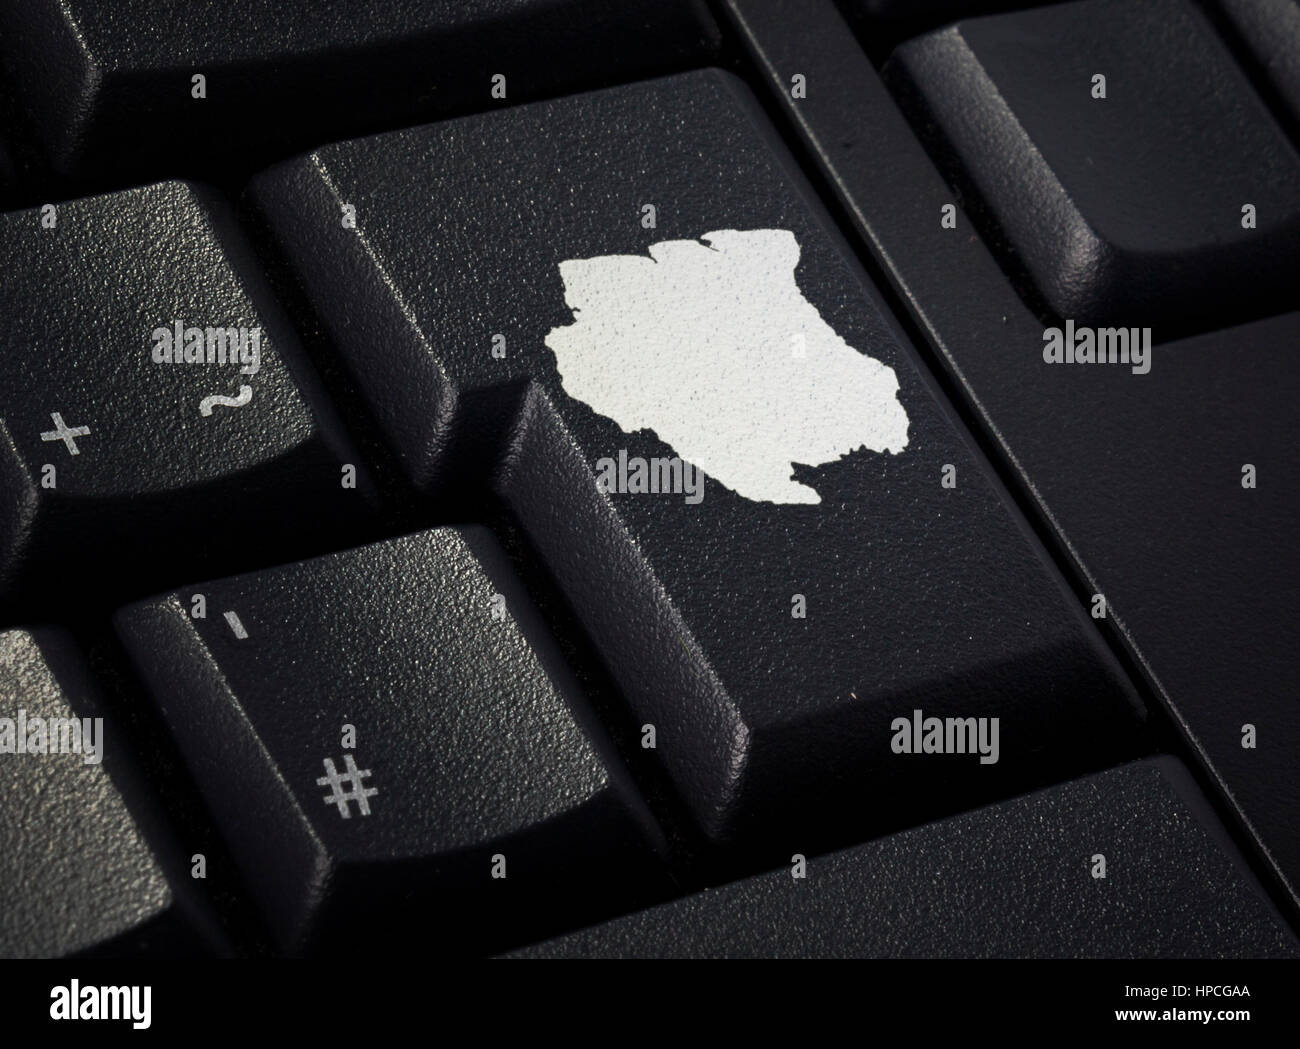 Return key in the shape of Suriname.(series) - Stock Image